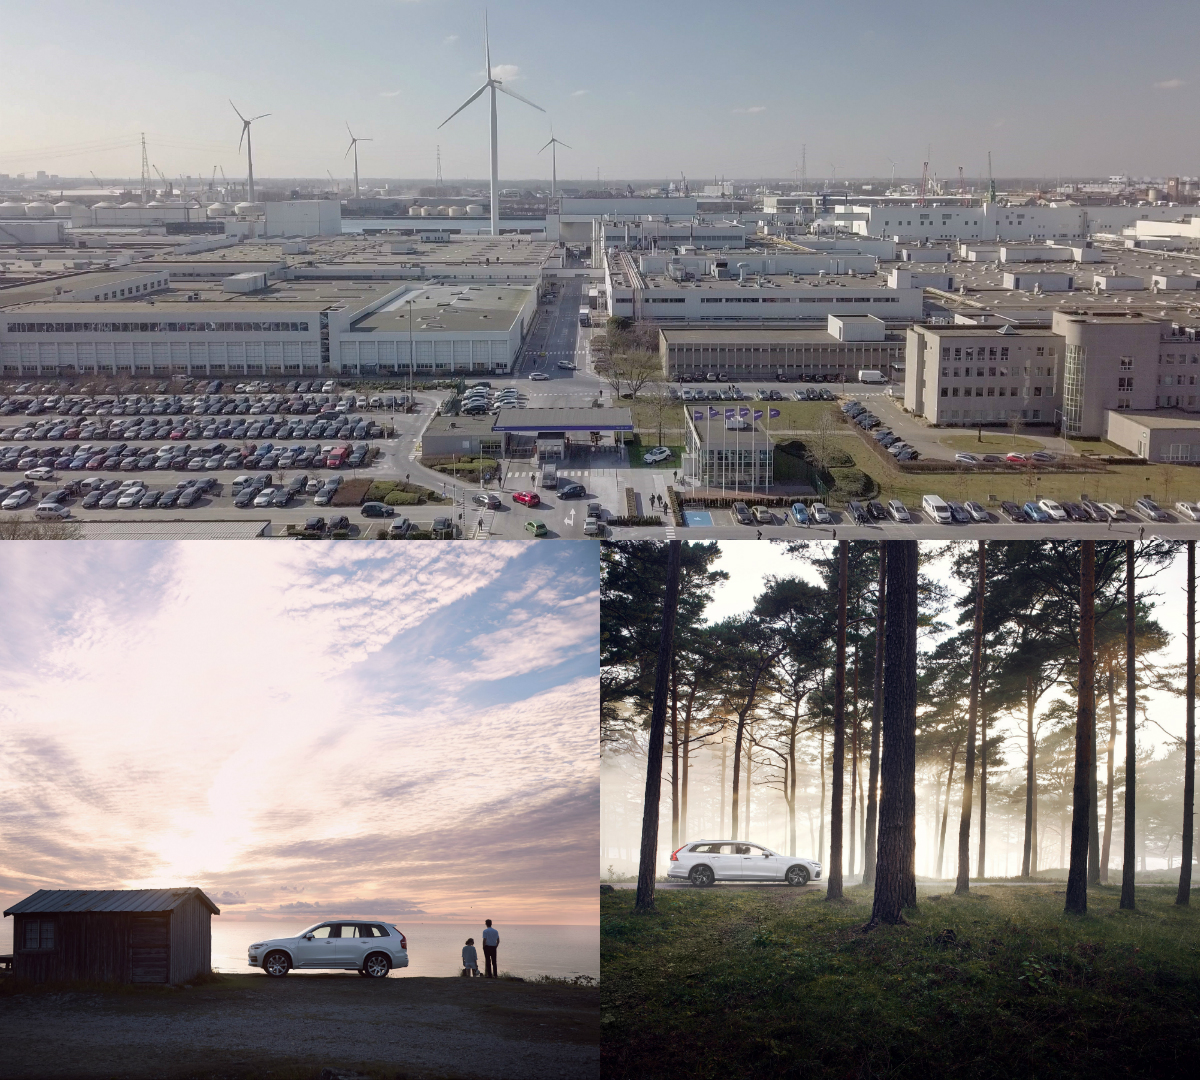 The Swedish automaker has, for the first time, introduced solar energy into its global manufacturing operations, with the installation of 15,000 solar panels at its car factory in Ghent, Belgium.